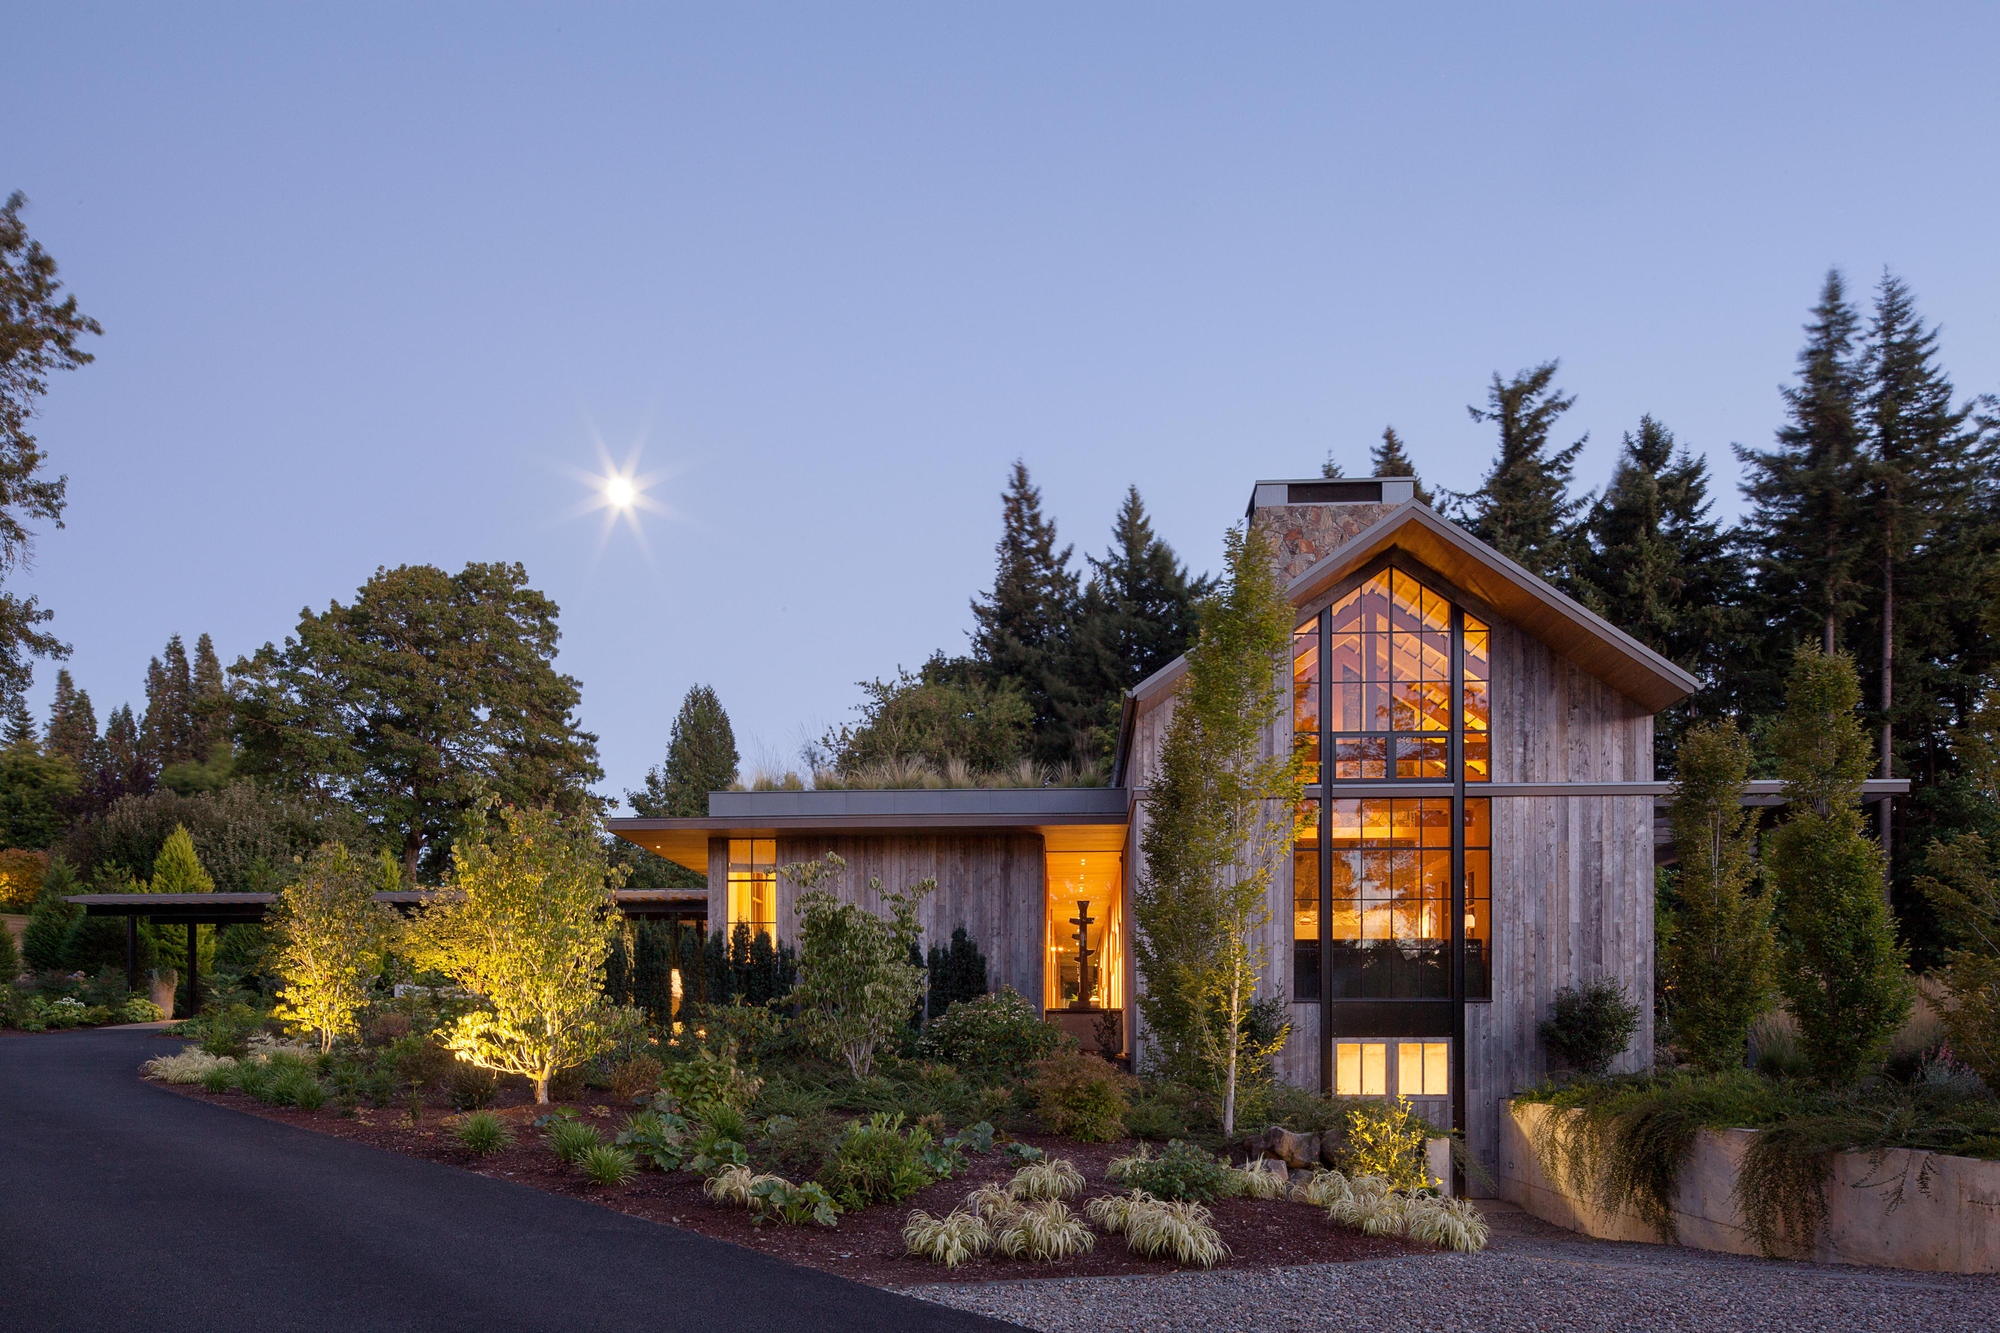 Gallery of Country Garden House / Olson Kundig - 3